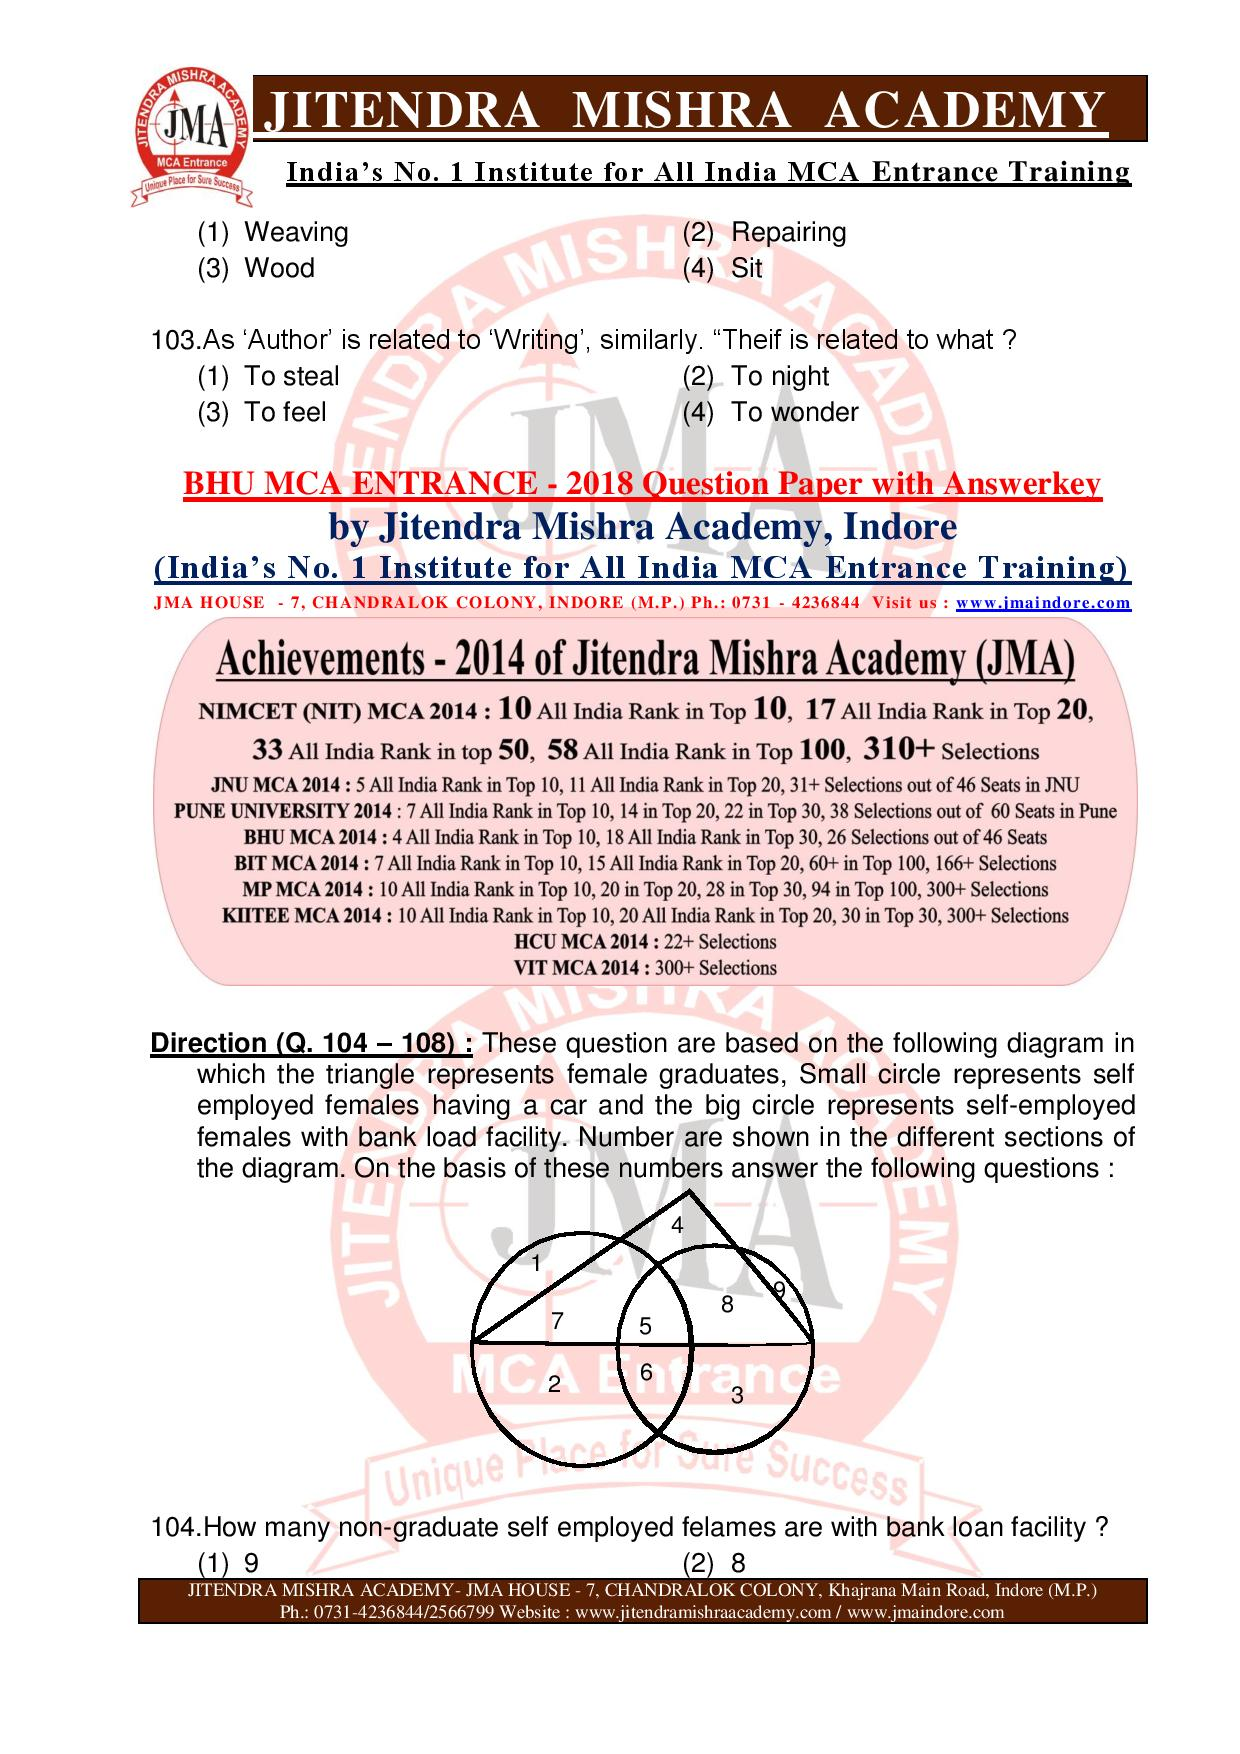 BHU MCA 2018 QUESTION PAPER12-page-032